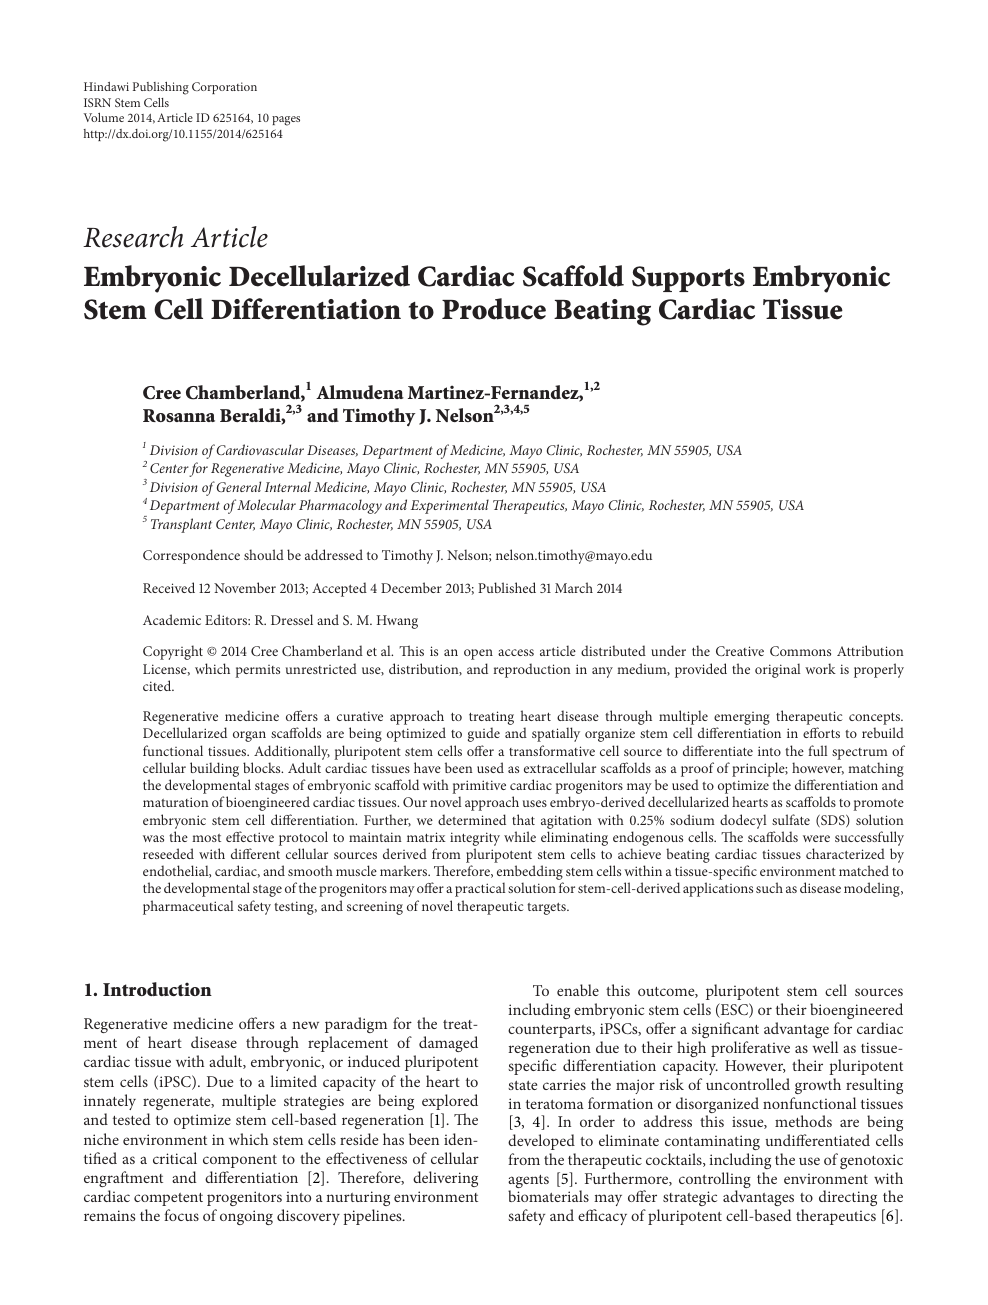 Embryonic Decellularized Cardiac Scaffold Supports Embryonic